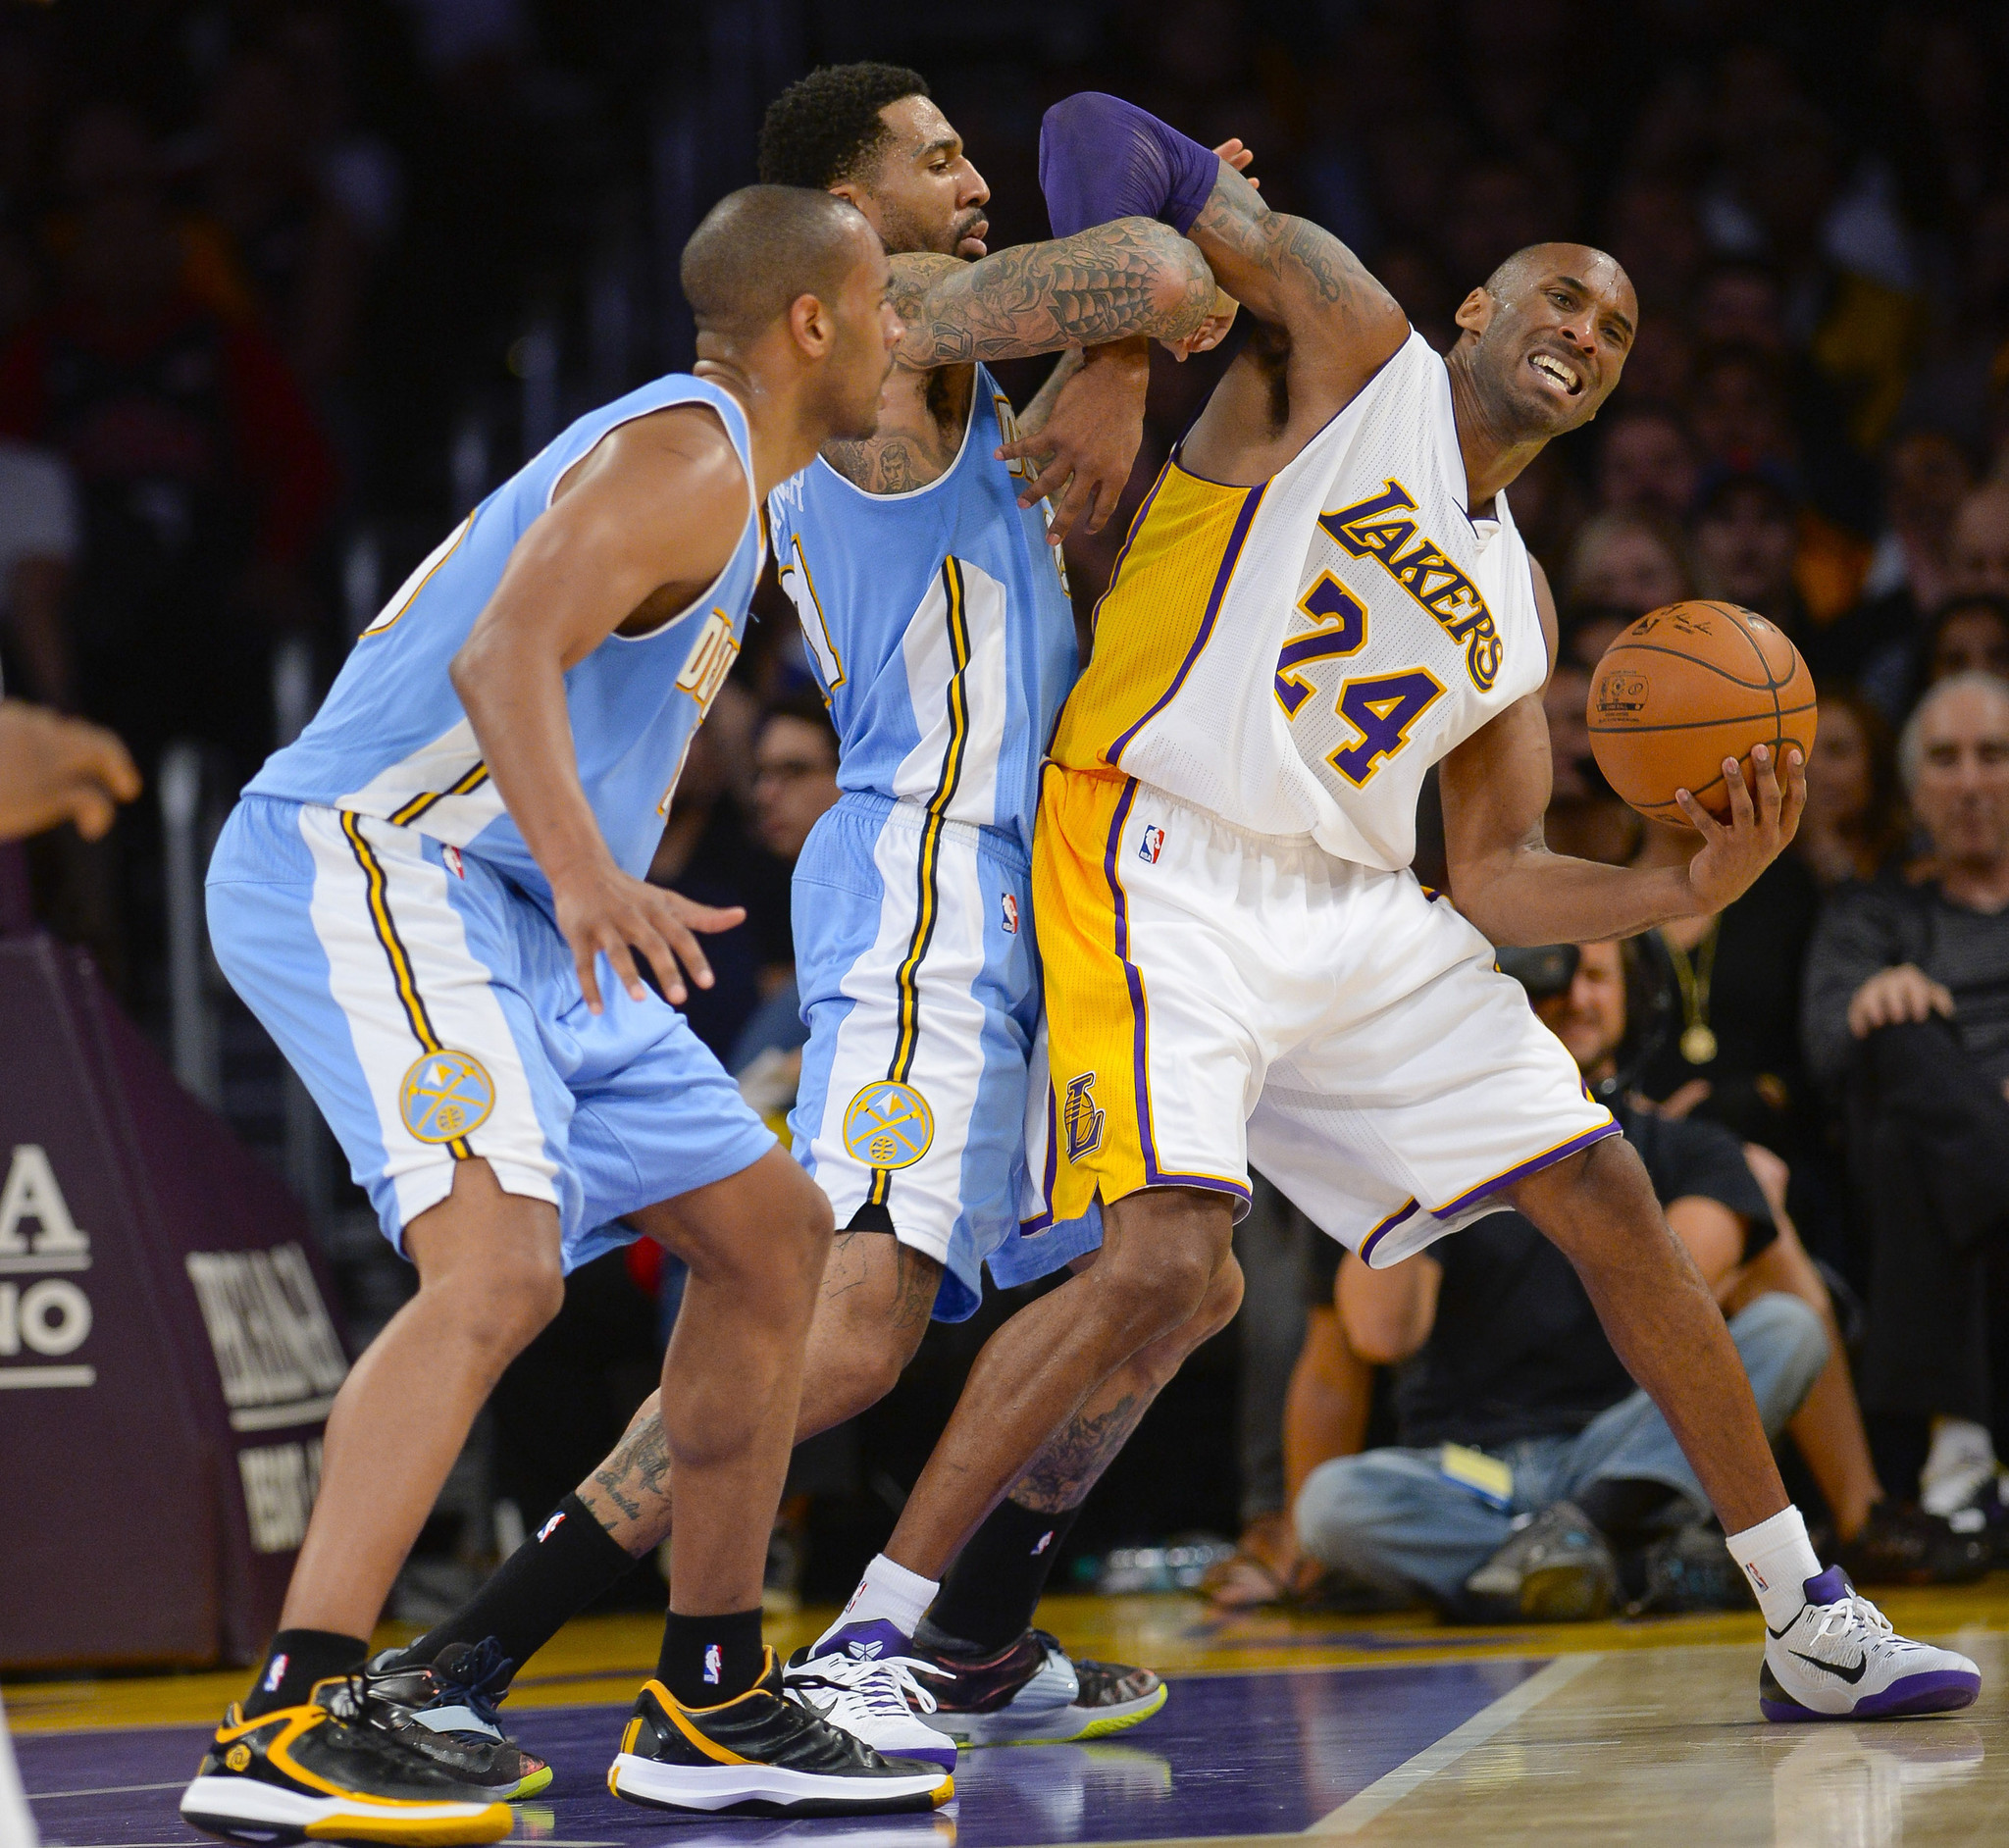 Nuggets Fall In Overtime To Wizards: Kobe Bryant And Lakers Miss-behave In Overtime Loss To